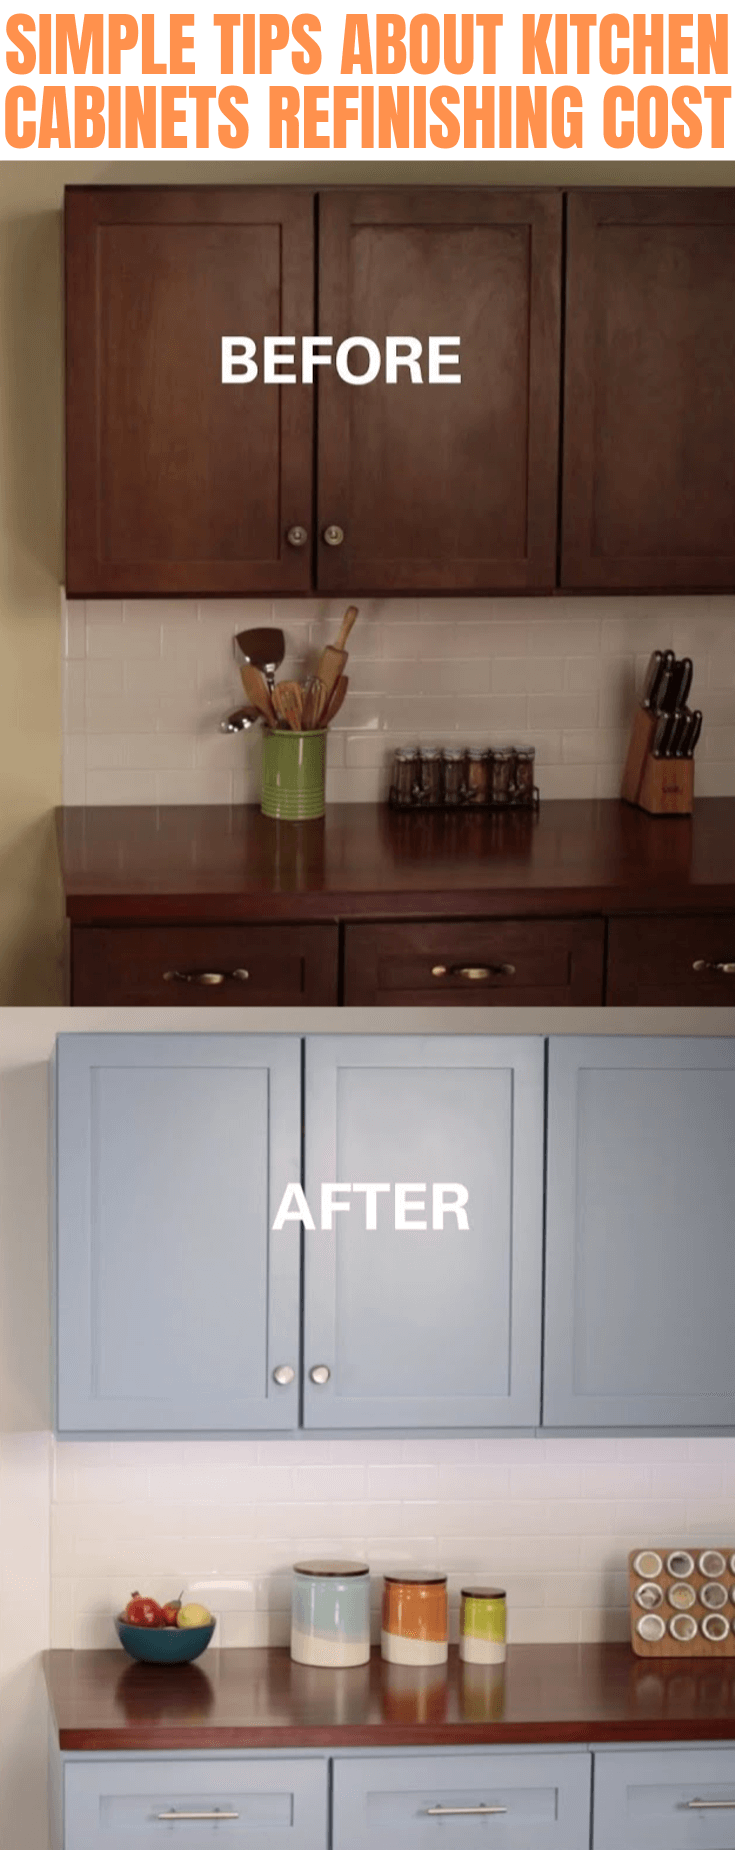 SIMPLE TIPS ABOUT KITCHEN CABINETS REFINISHING COST